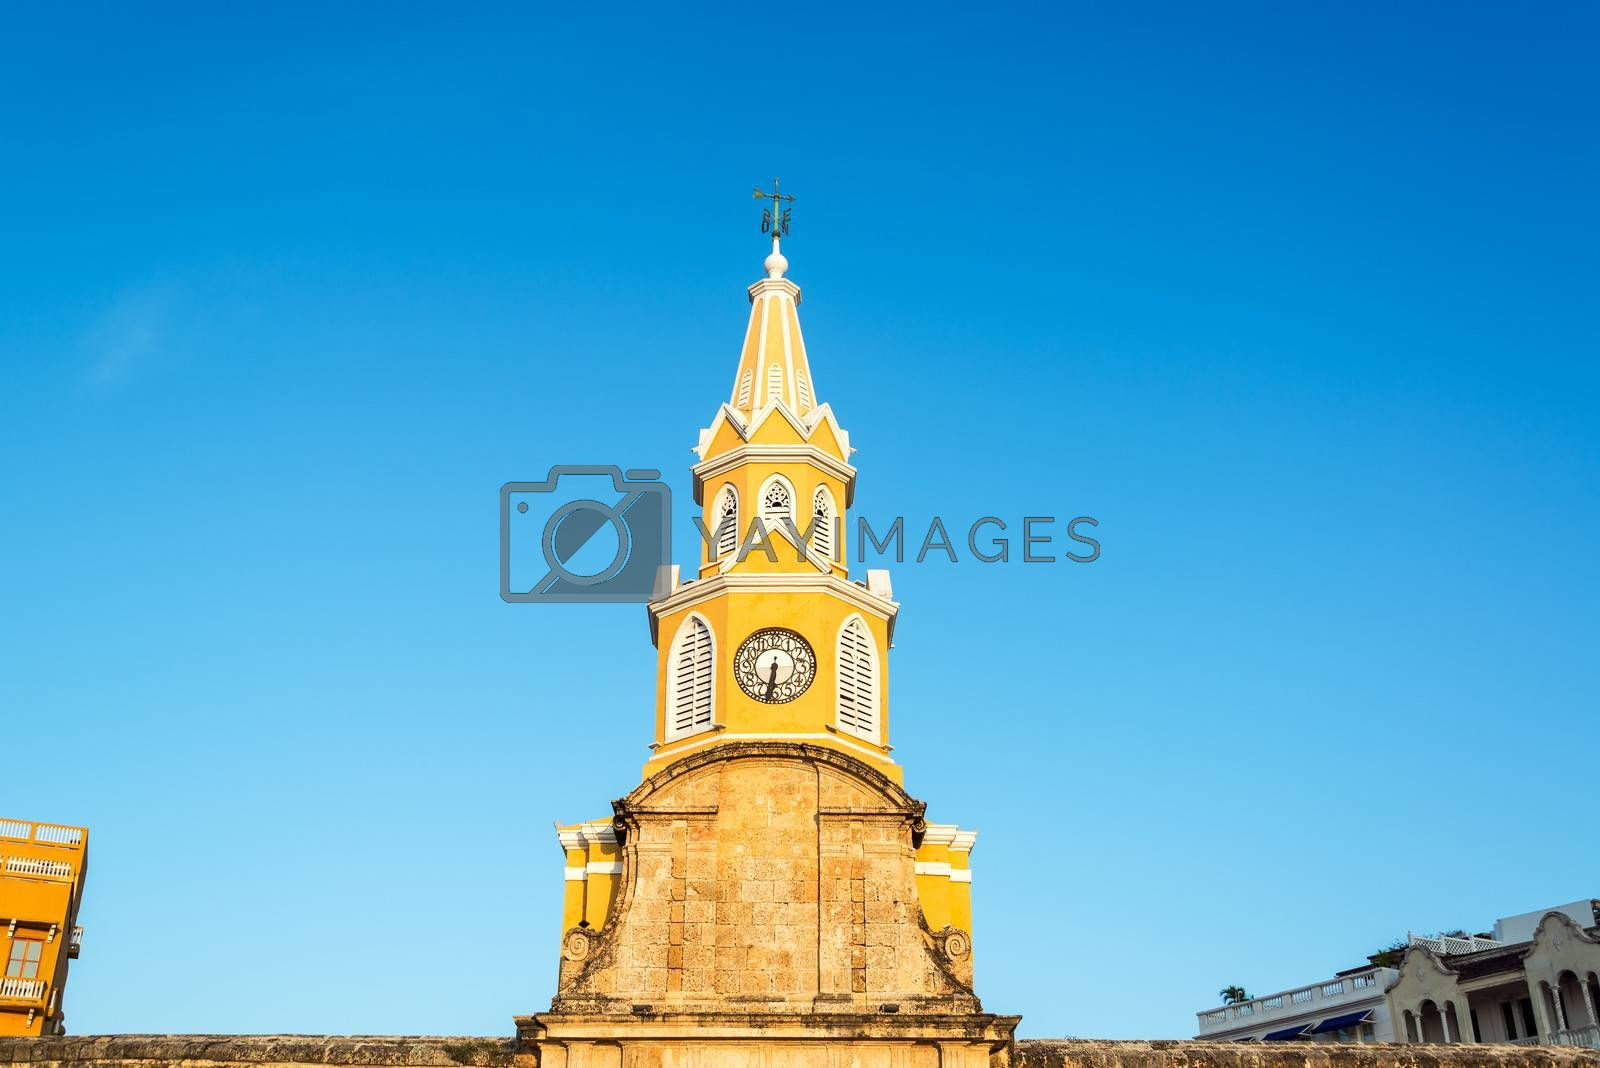 The yellow clock tower marking the entrance to the old town of Cartagena, Colombia